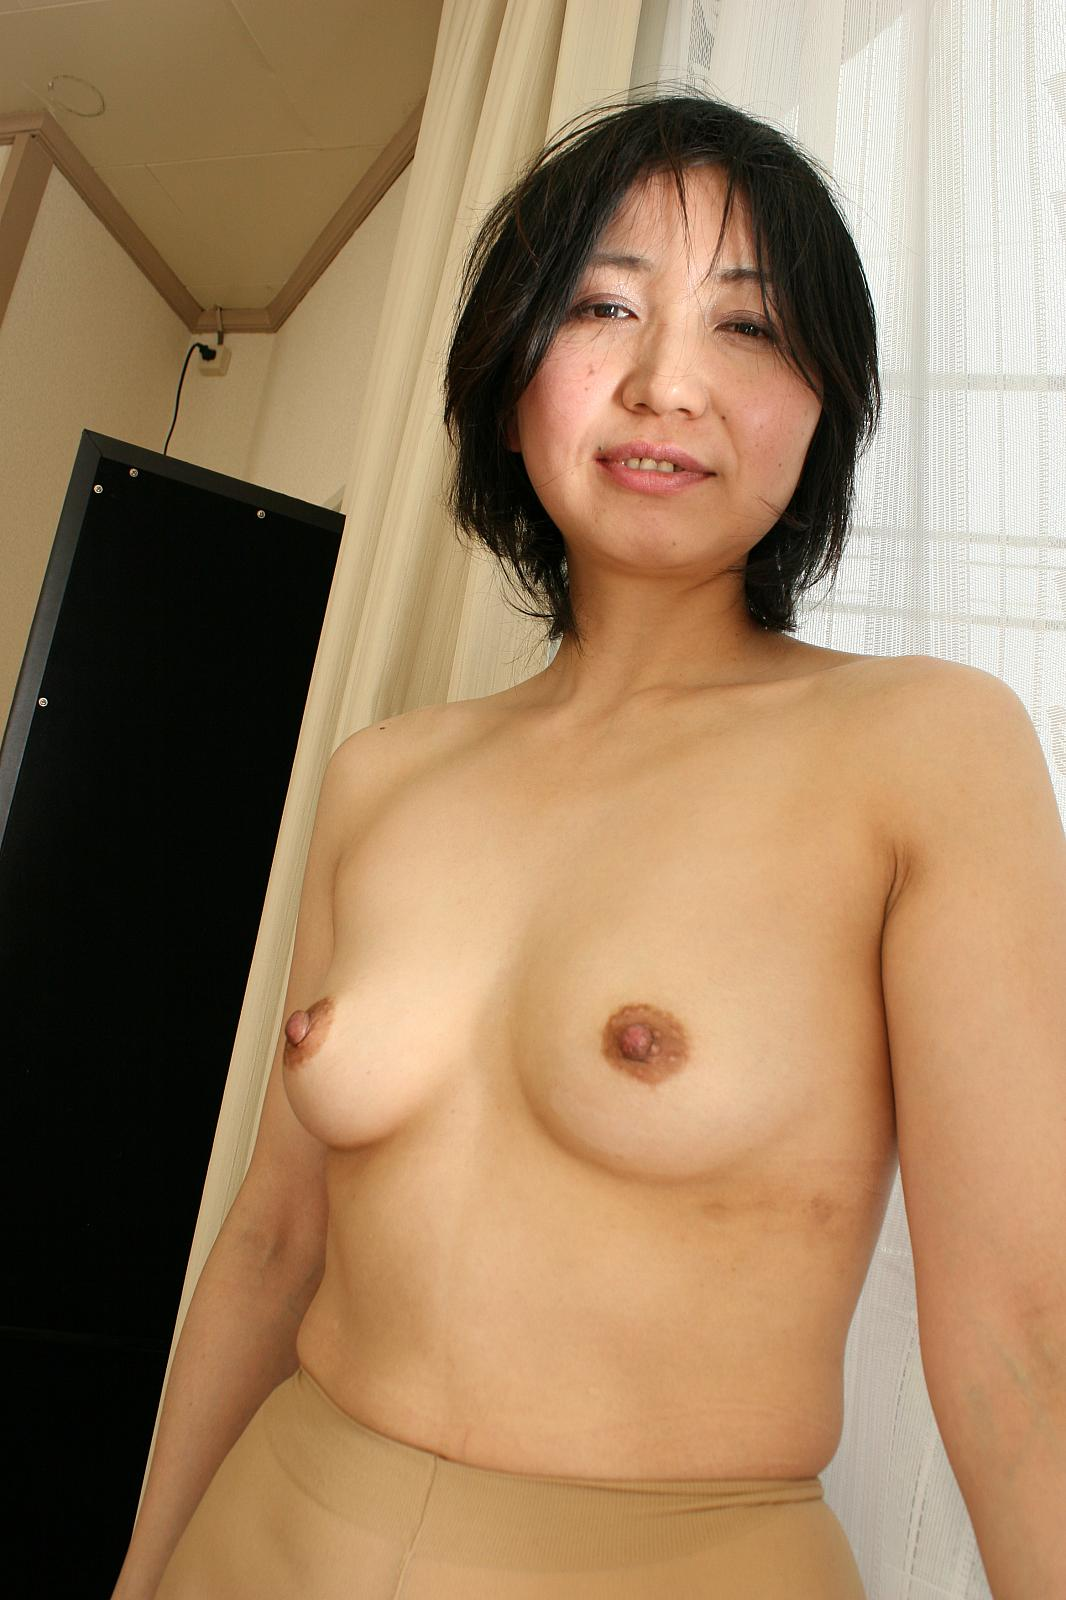 Commit error. mature asian women panties congratulate